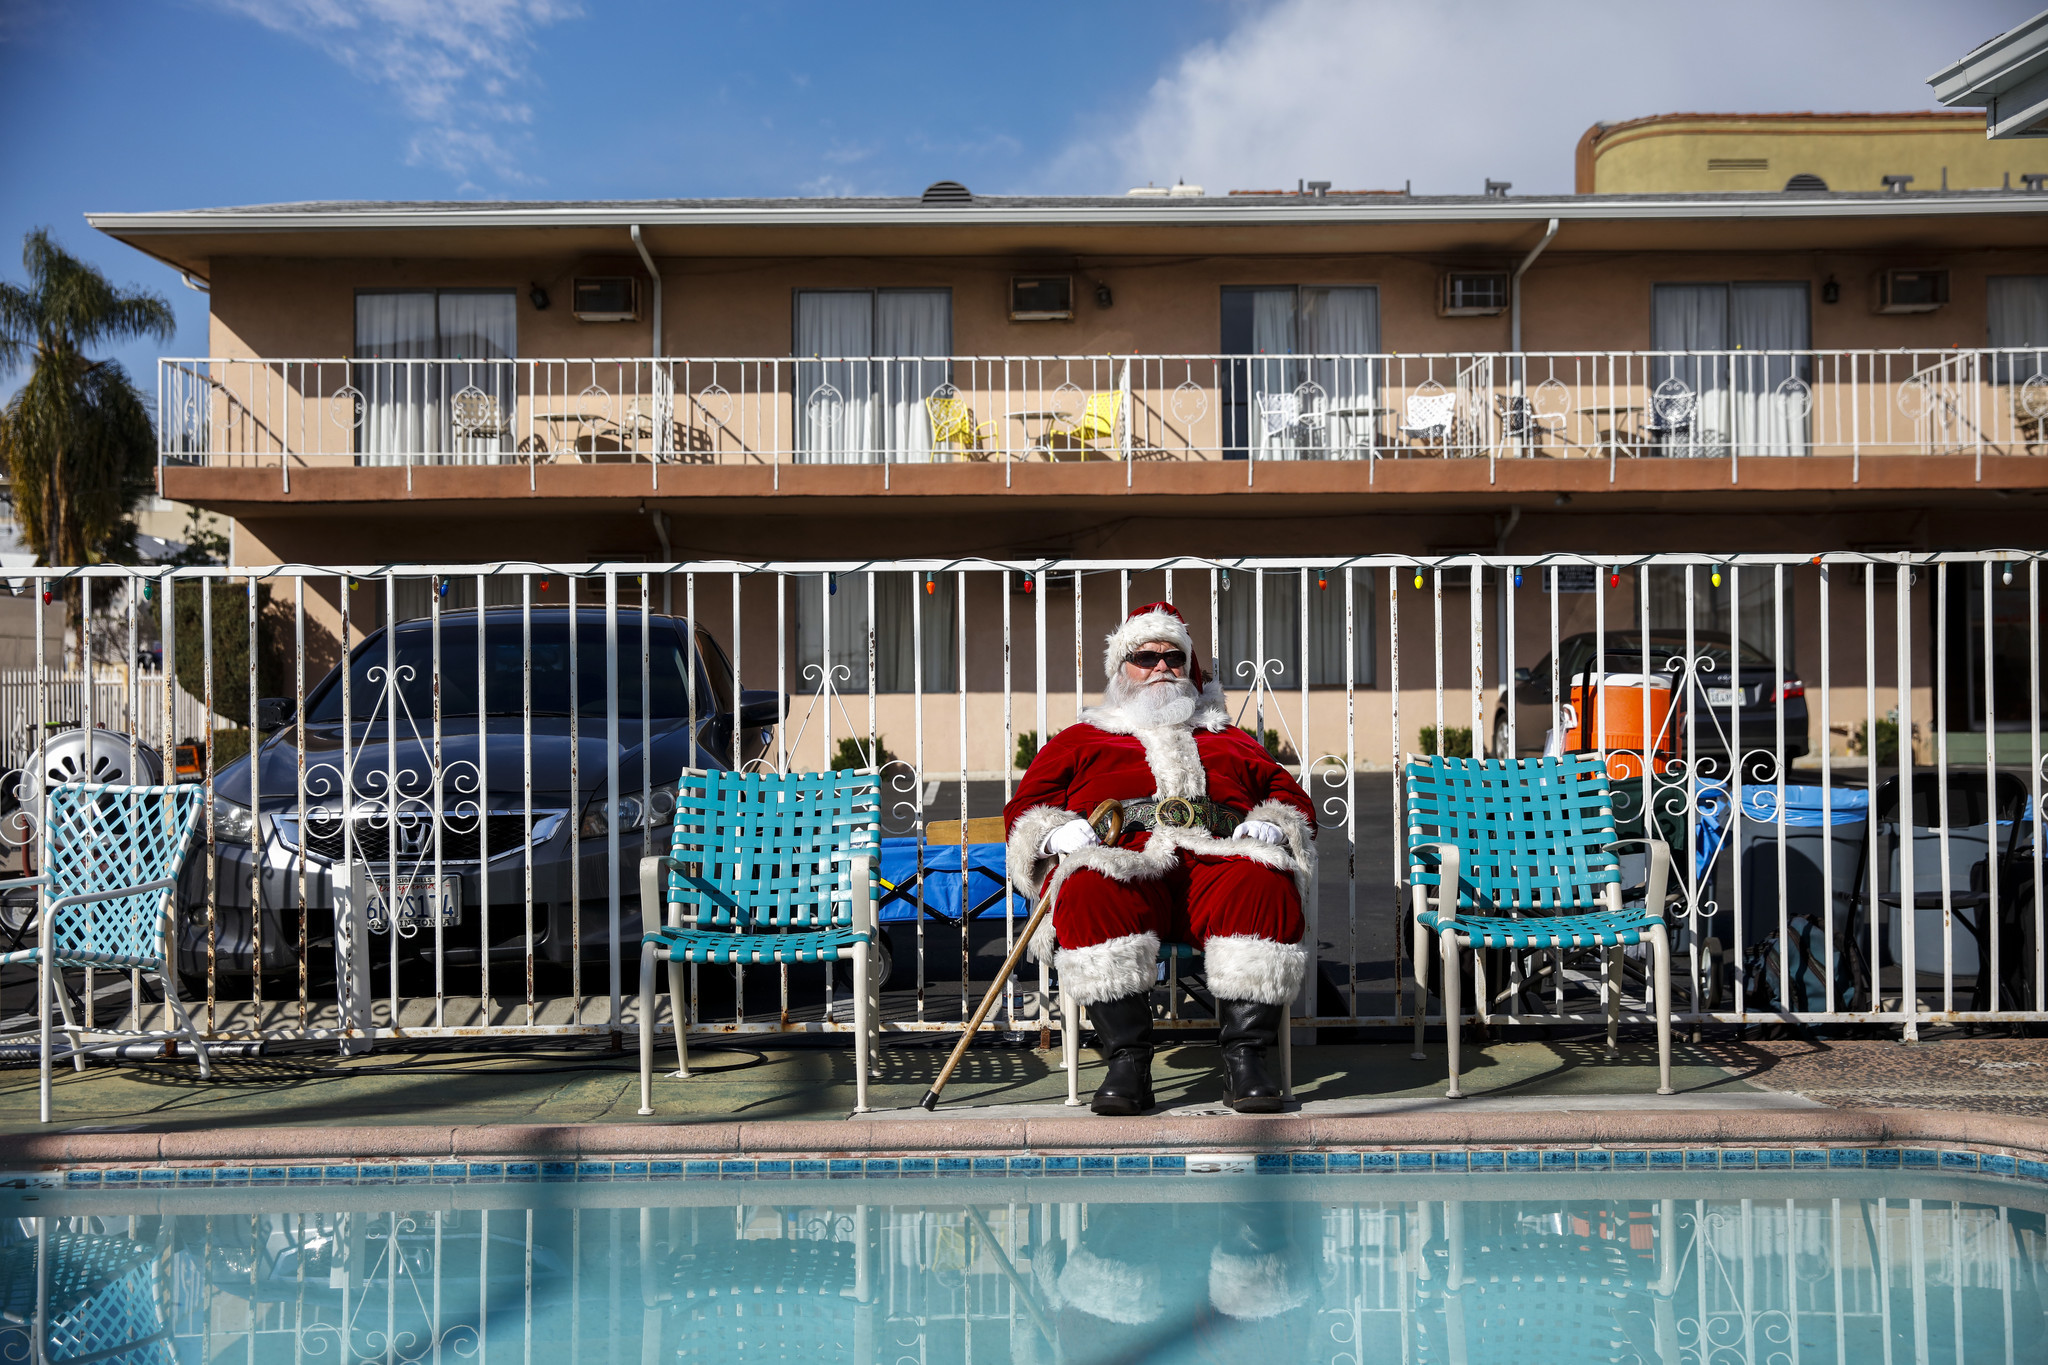 An actor in a Santa costume gets in his